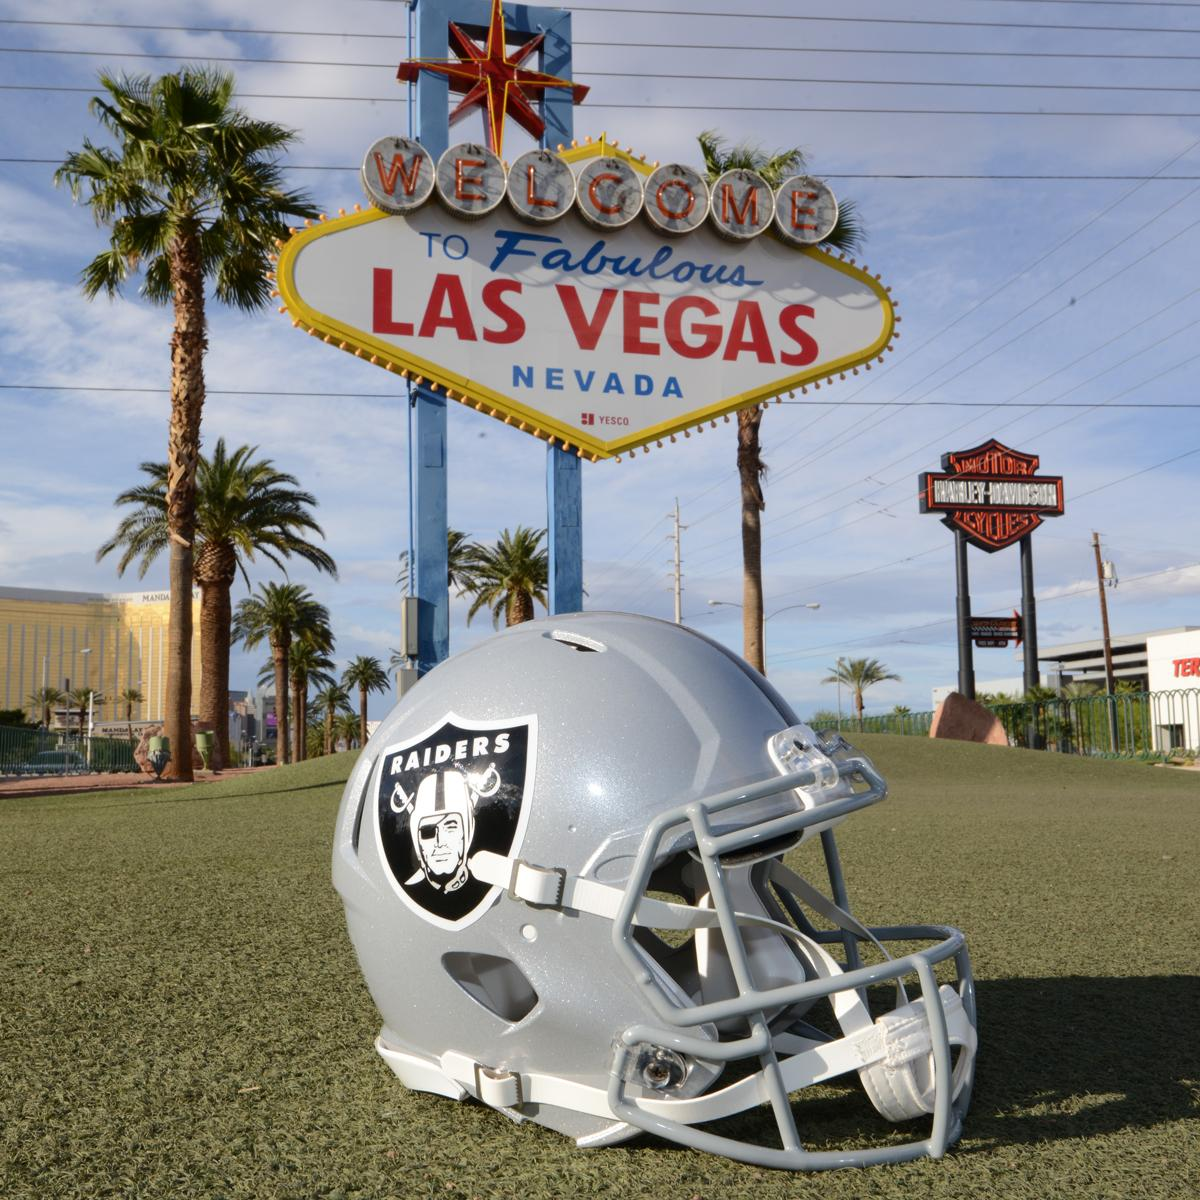 55 and over living in las vegas - The Las Vegas Raiders Https T Co 4wlmo0w35m